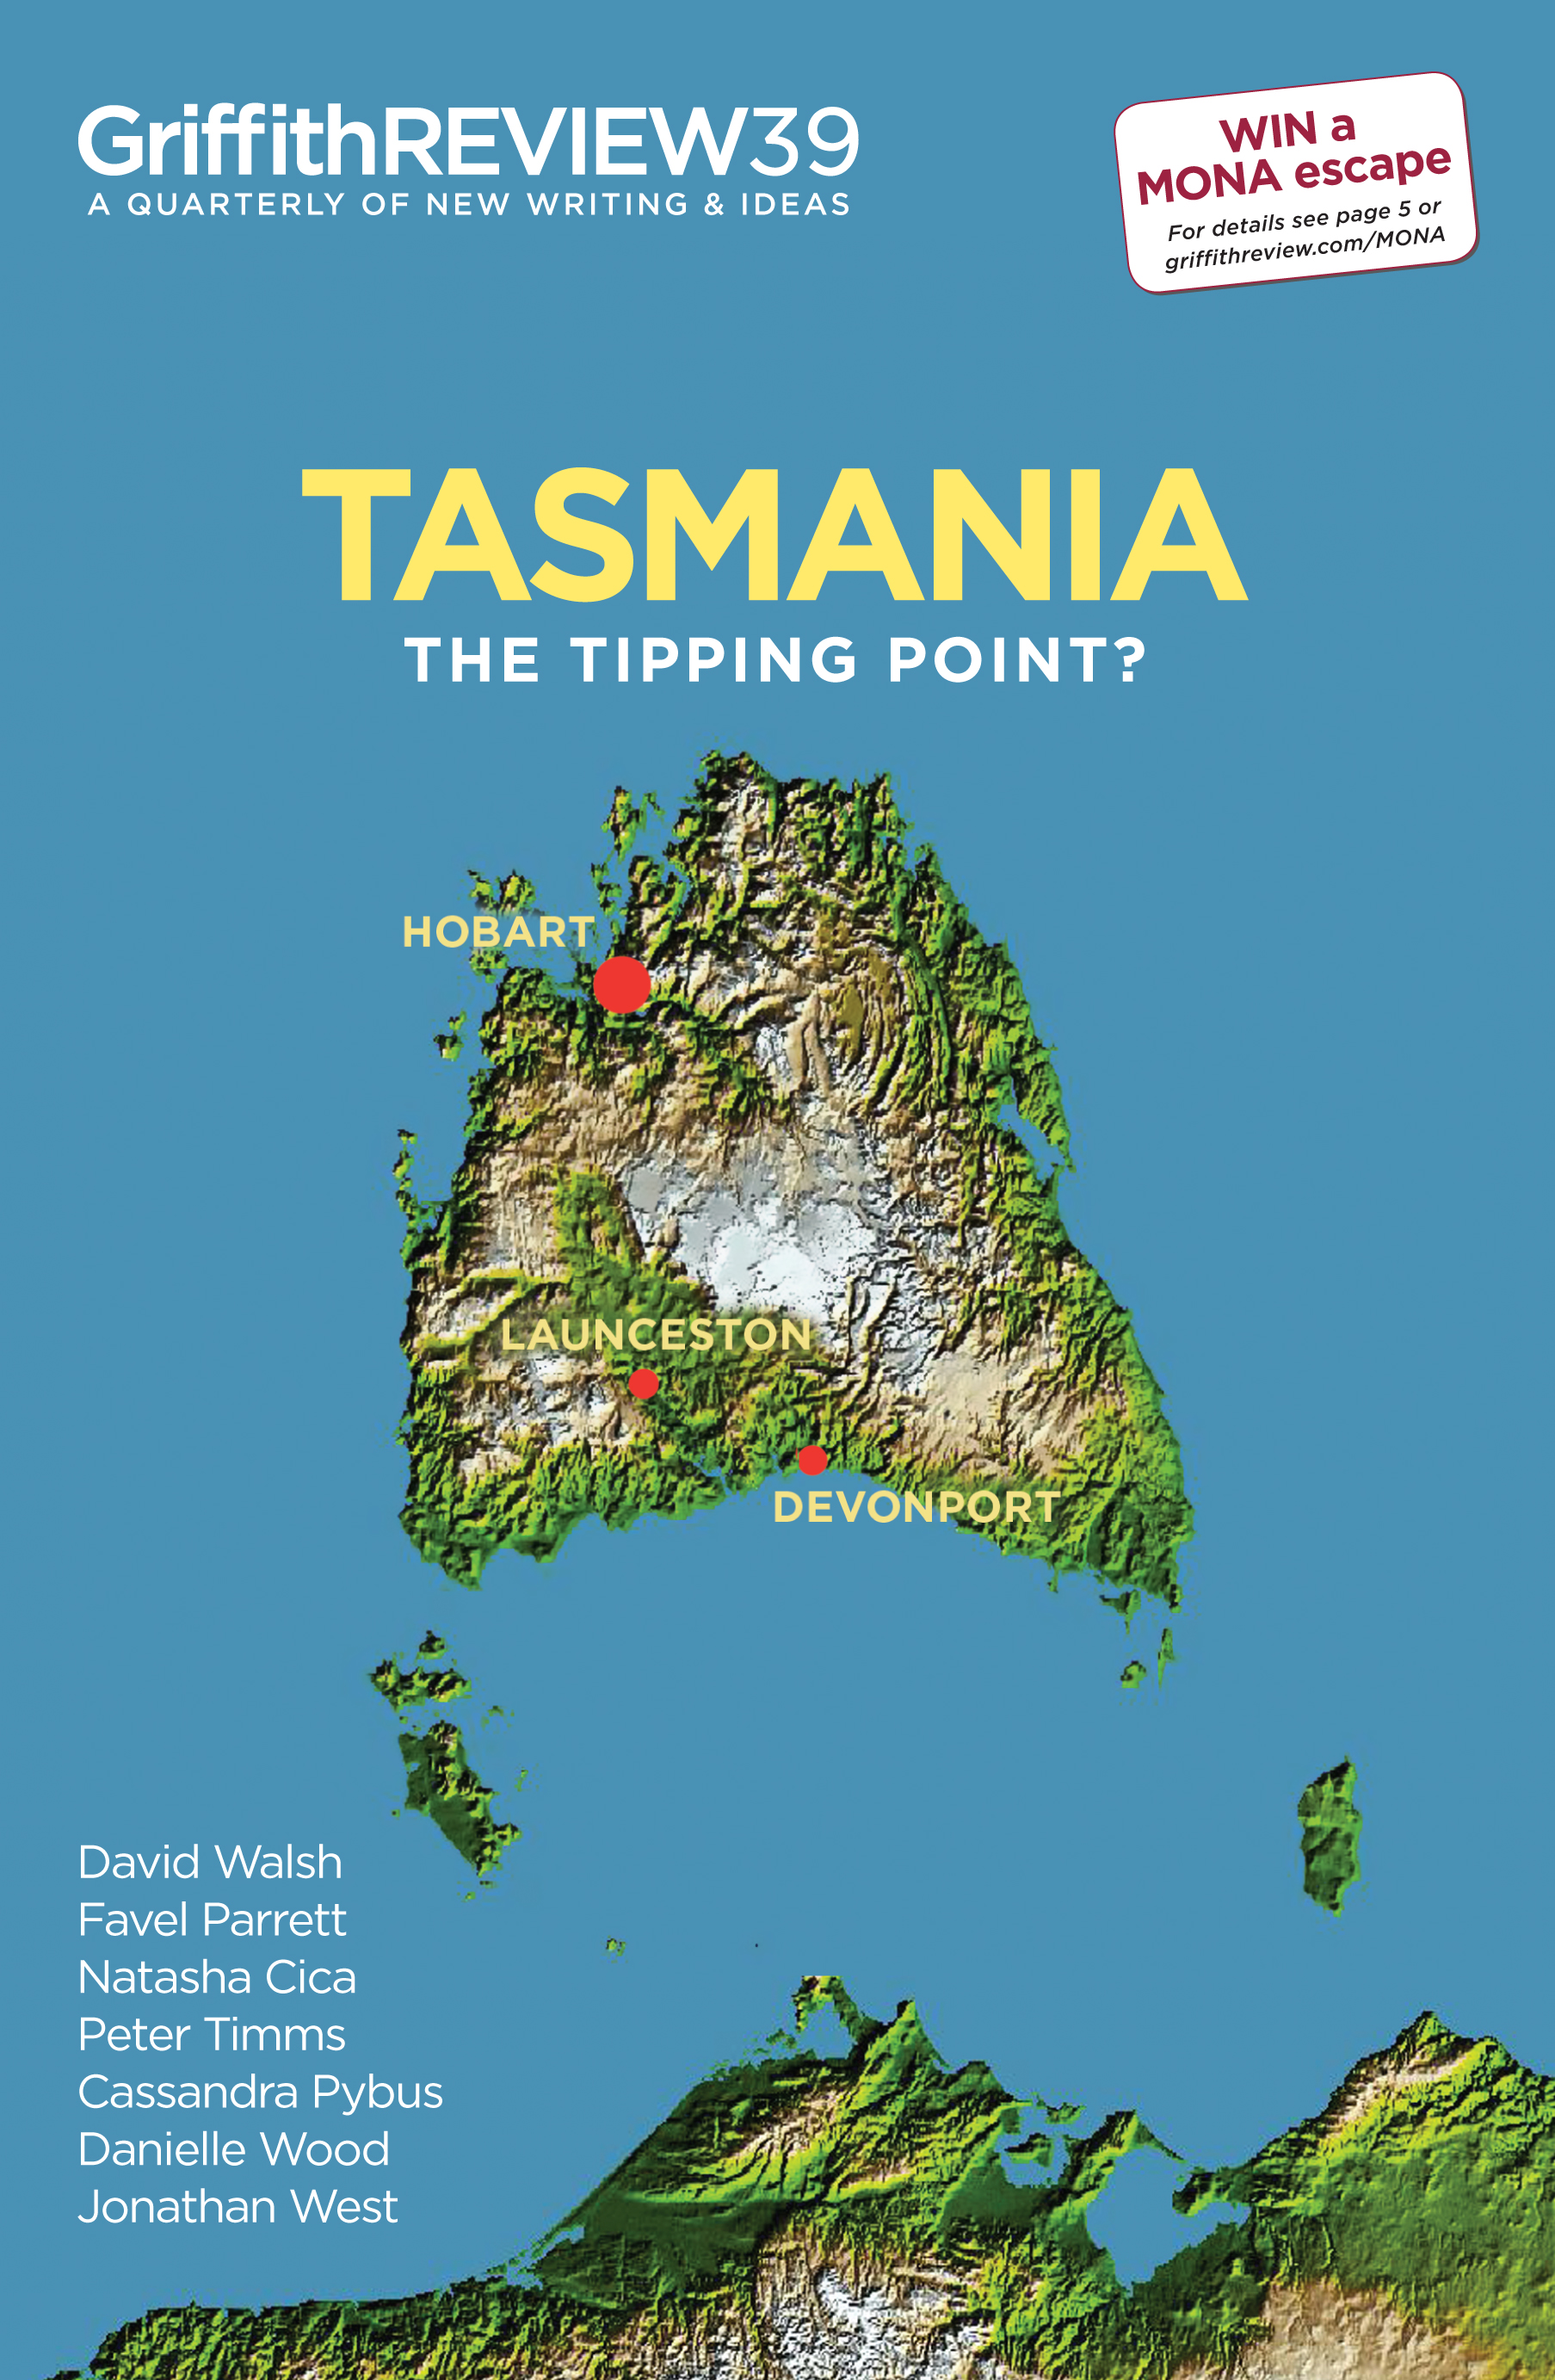 griffith review 39 tasmania the tipping point book by julianne share this booksharehigh resolution coverpicturepreview